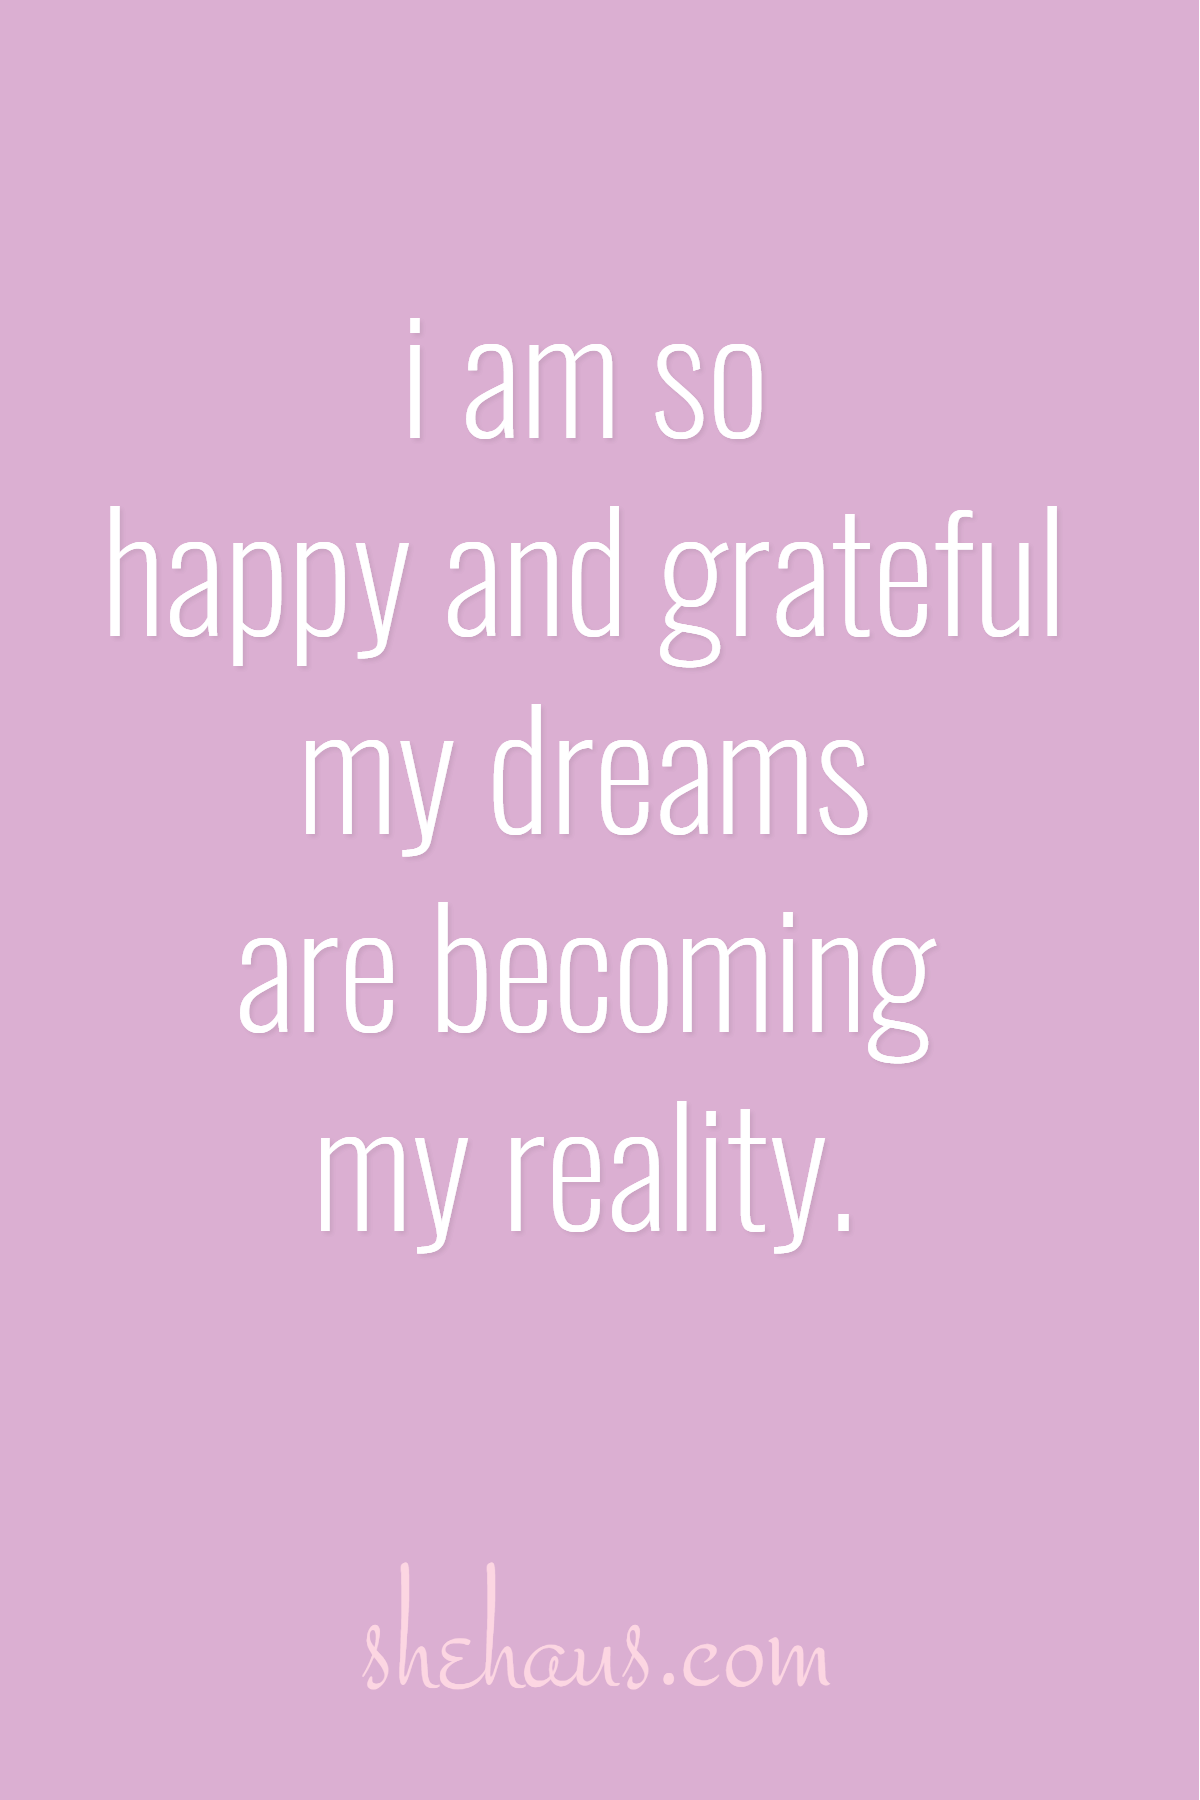 I Am So Happy And Grateful My Dreams Are Becoming My Reality Shehaus Com Positive Affirmations Quotes Affirmations Positive Affirmations